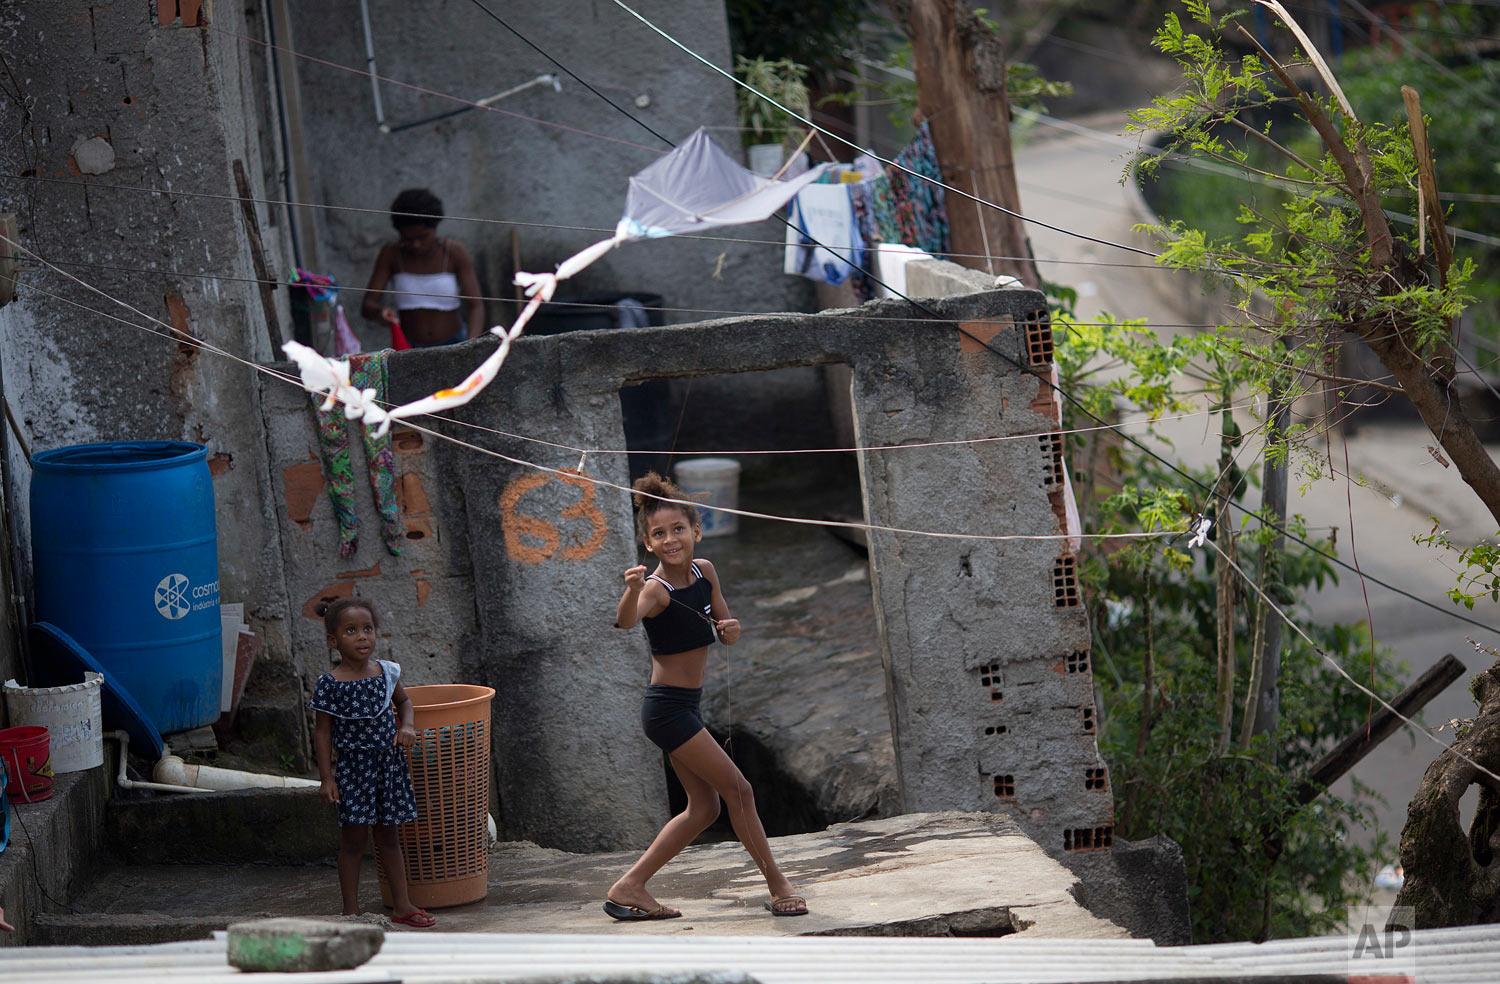 A young watches as her homemade kite takes flight in the Complexo da Penha slum's Chatuba neighborhood, in Rio de Janeiro, Brazil, Aug. 22, 2018. (AP Photo/Silvia Izquierdo)